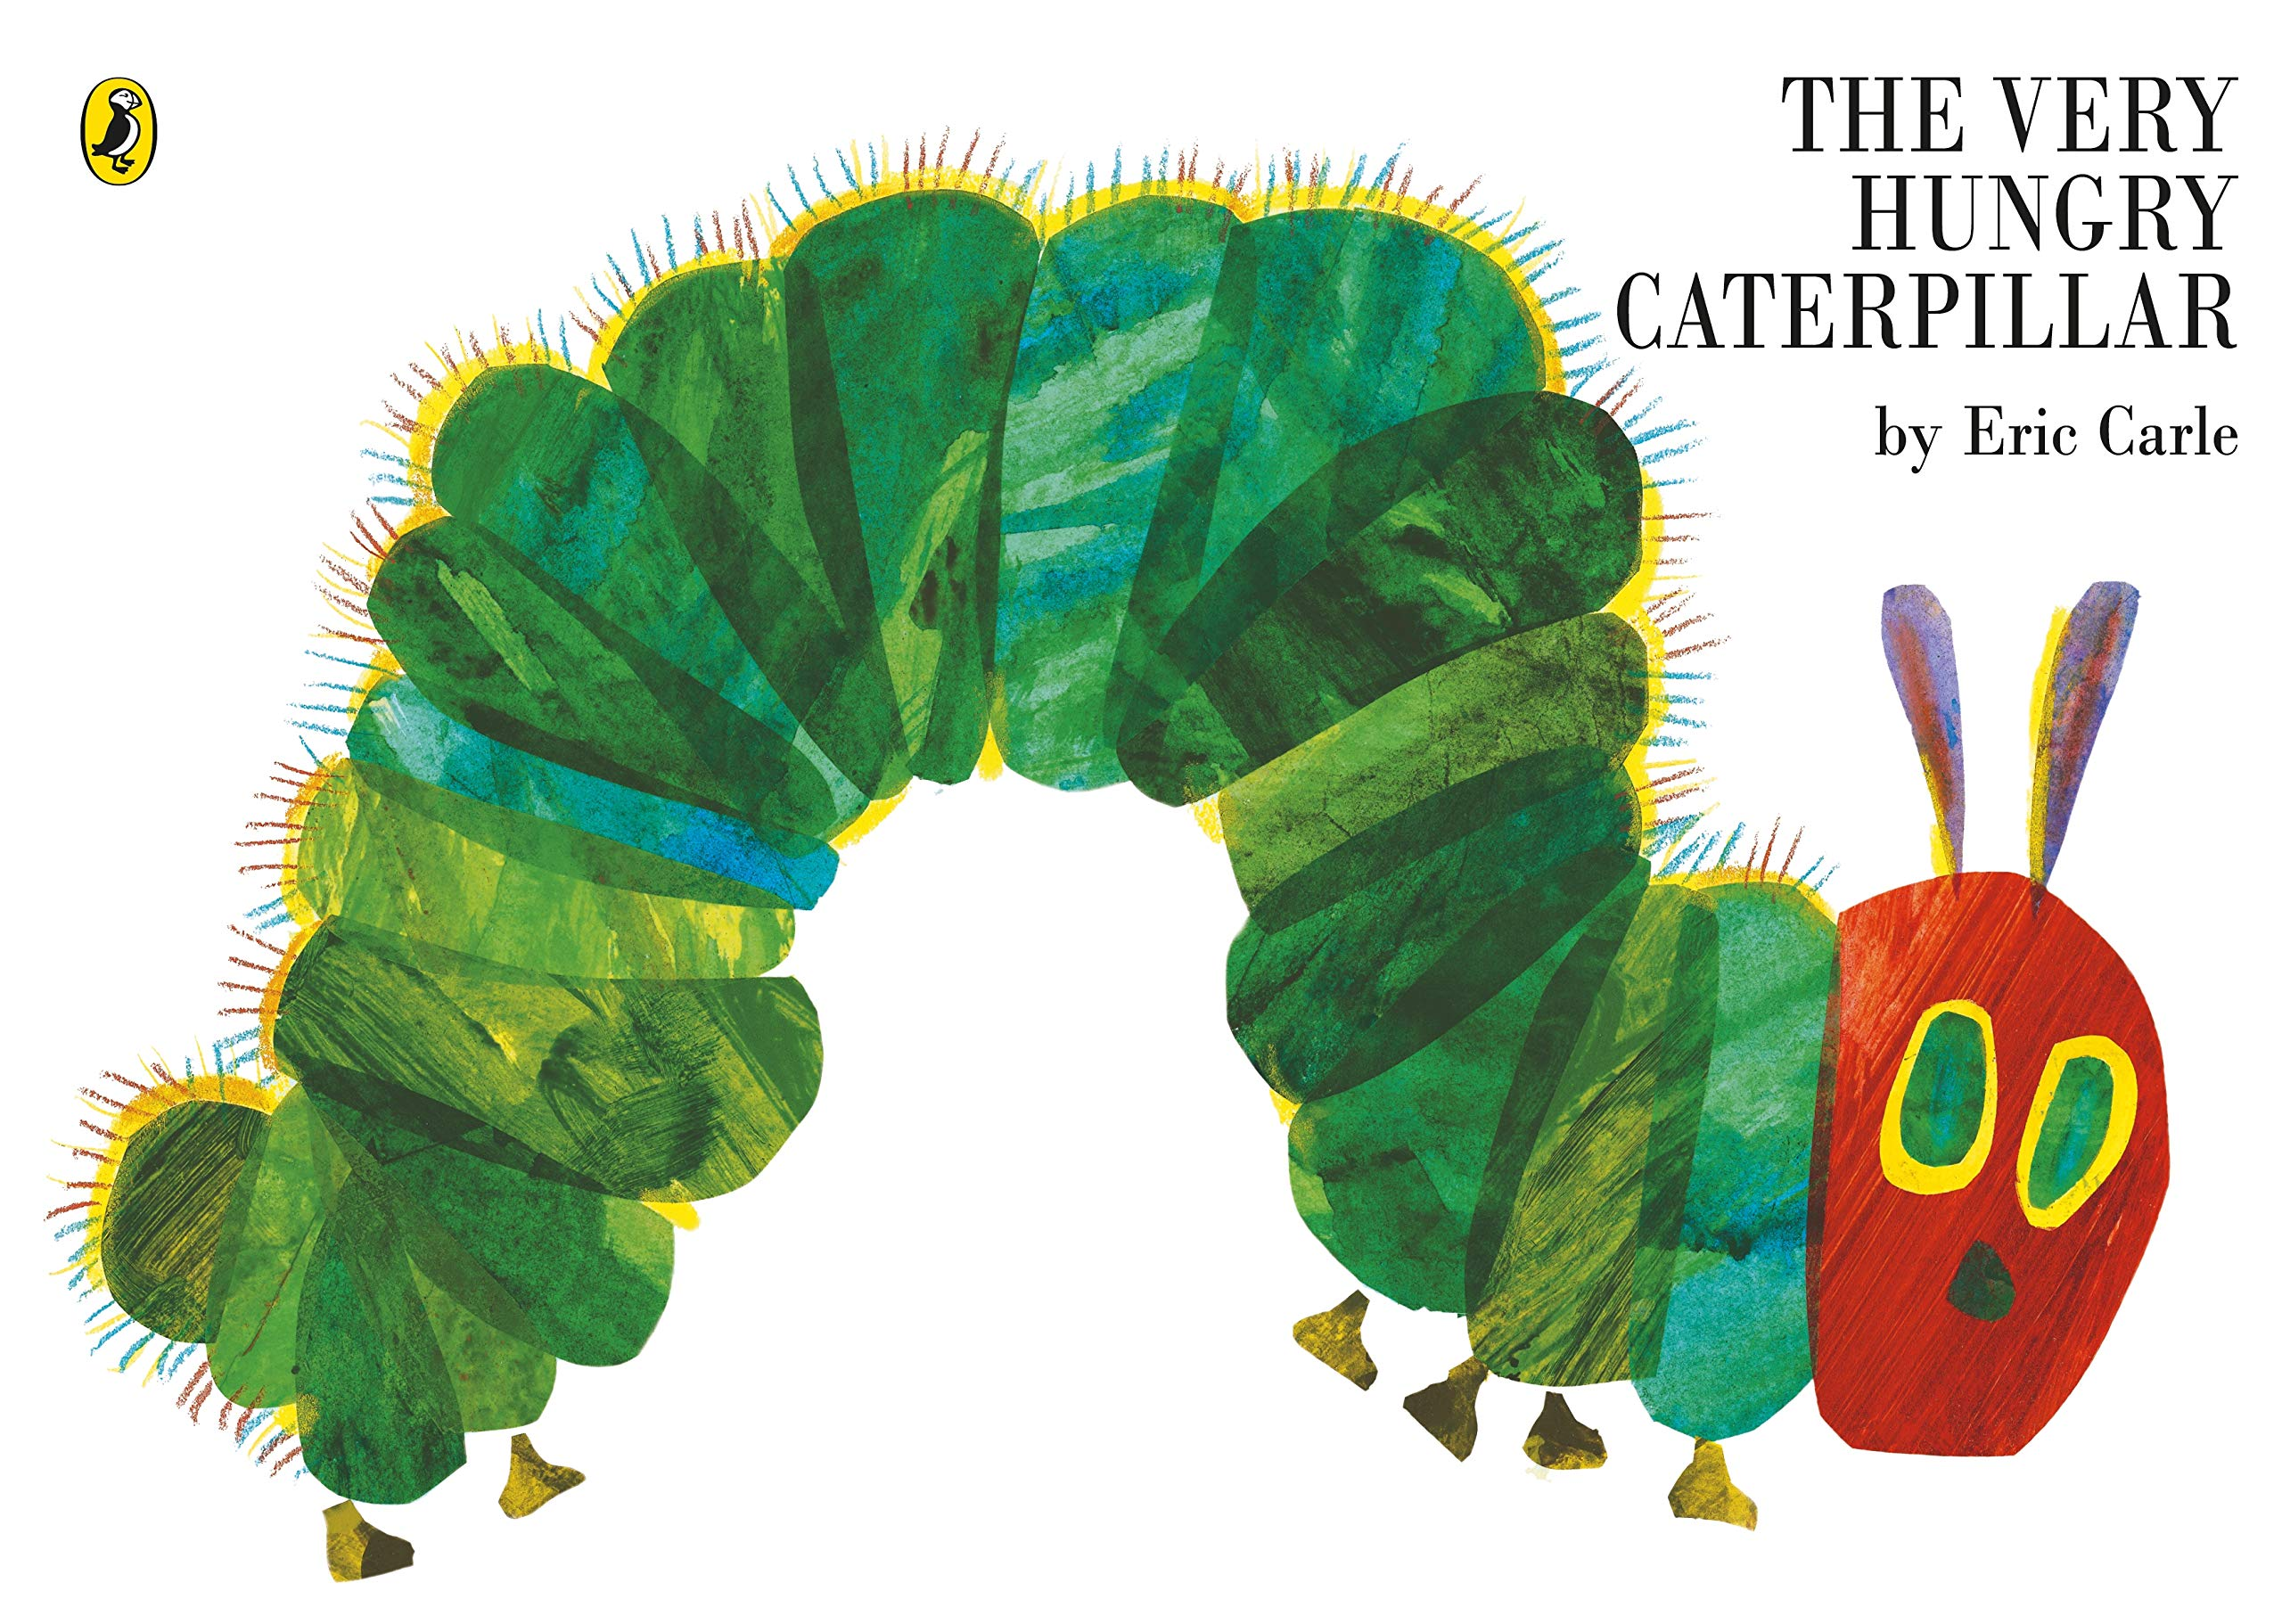 The Very Hungry Caterpillar: Amazon.co.uk: Carle, Eric: Books